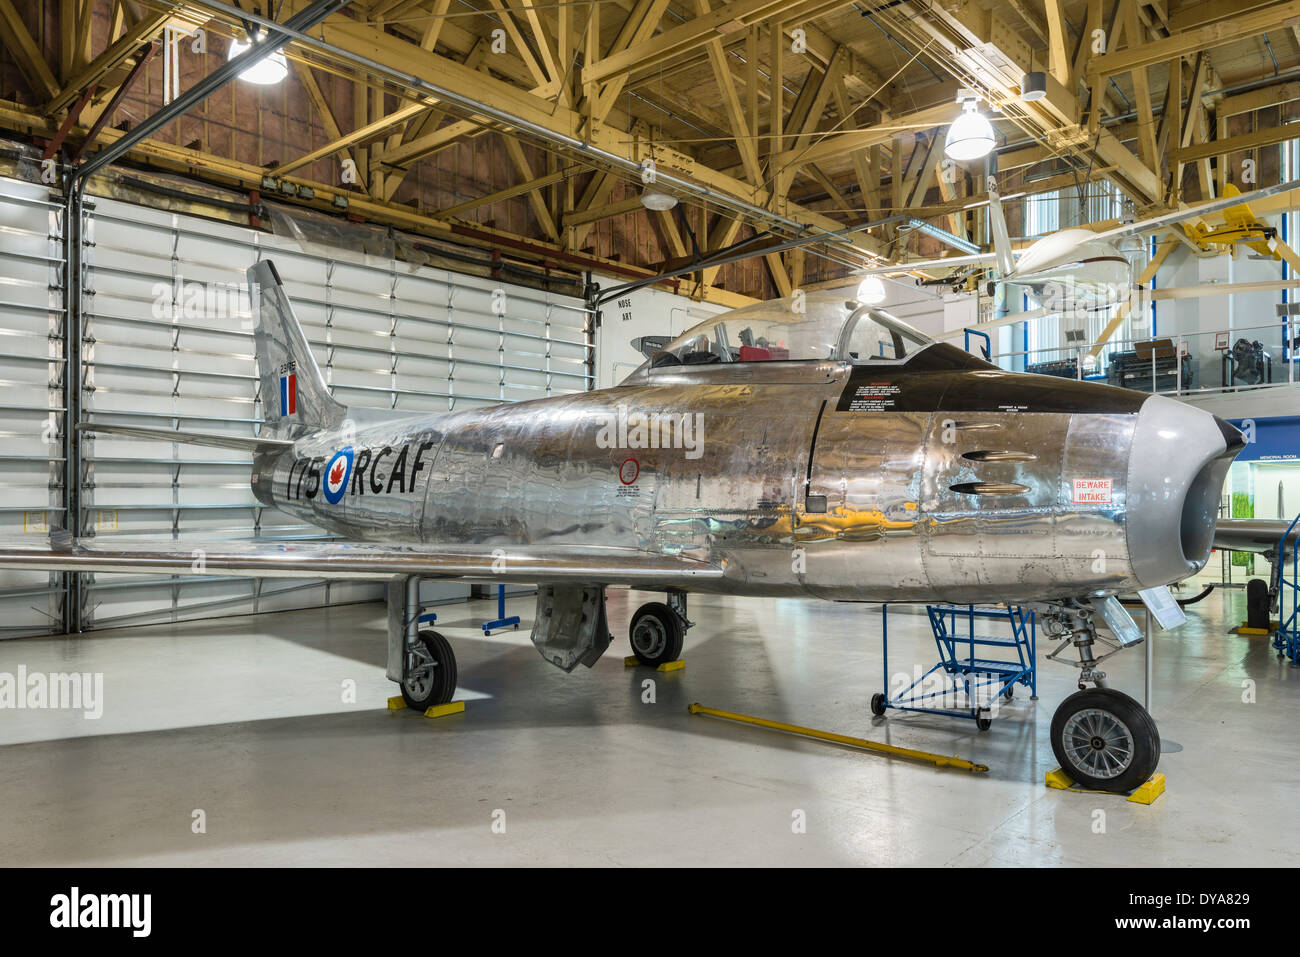 North American F-86 Sabre jet fighter, Main Hangar at Aero Space Museum of Calgary, Calgary, Alberta, Canada - Stock Image